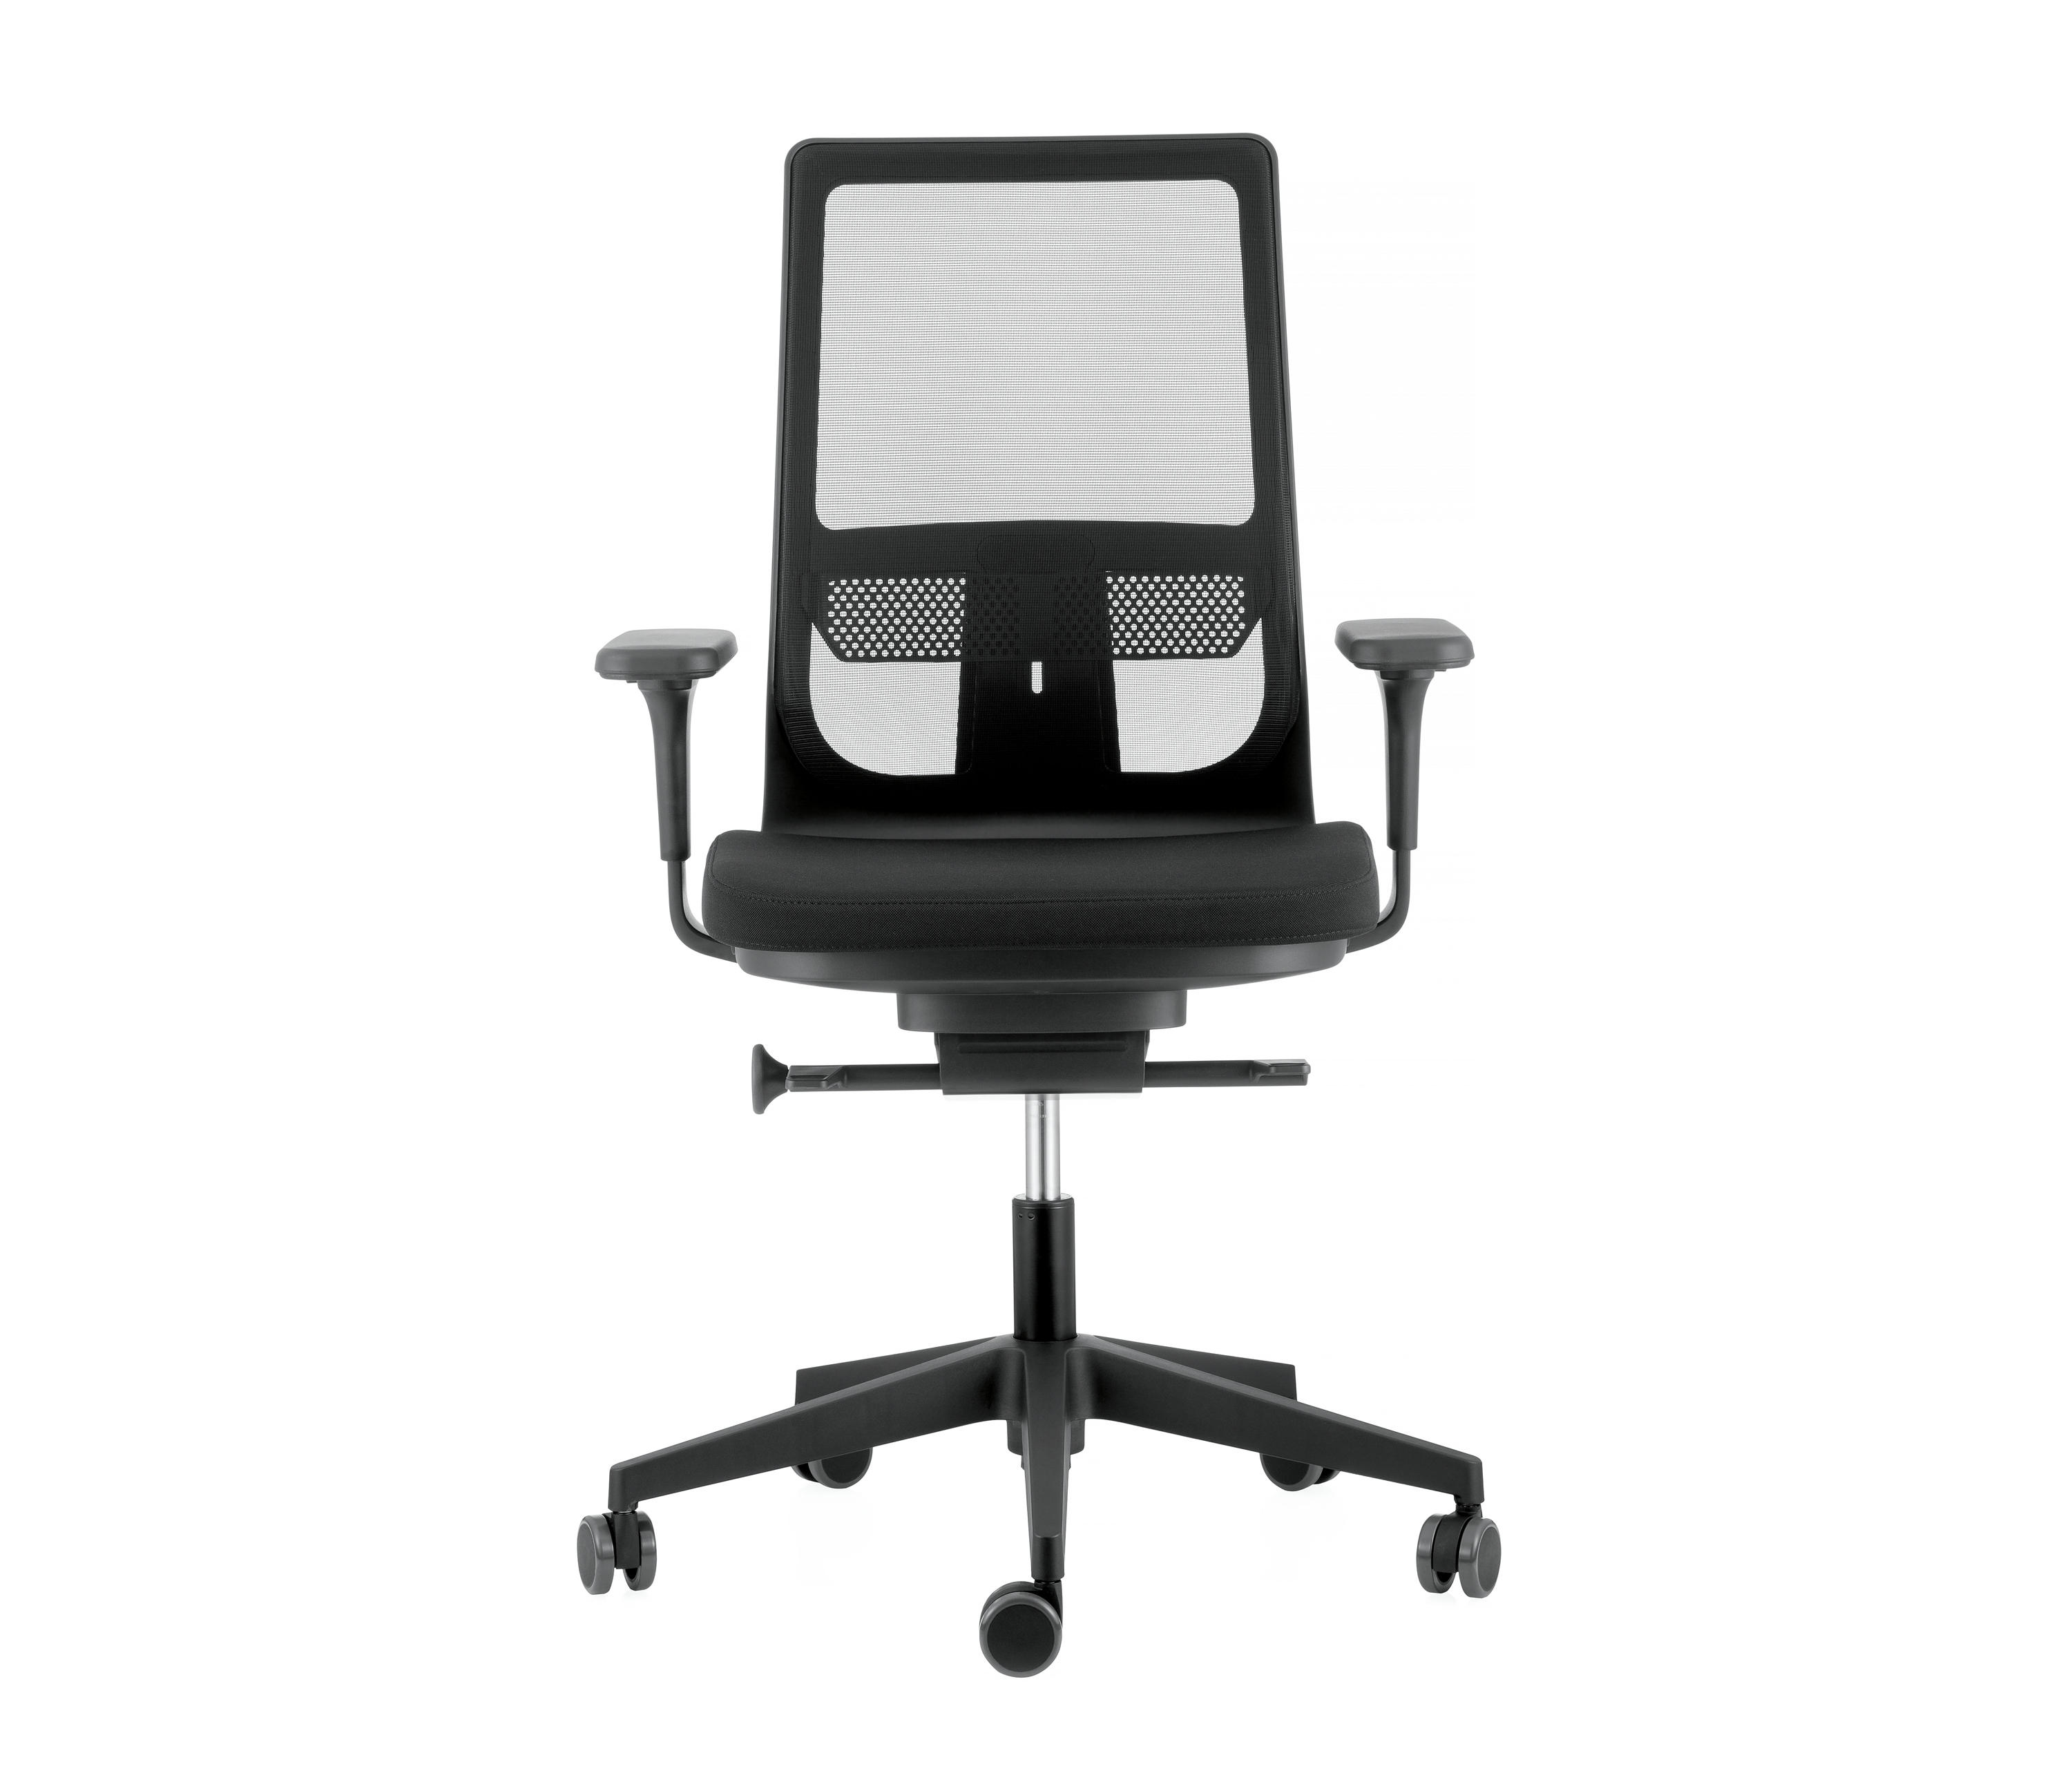 MANAGEMENT CHAIRS WITH SEAT IN PLASTIC MESH High quality